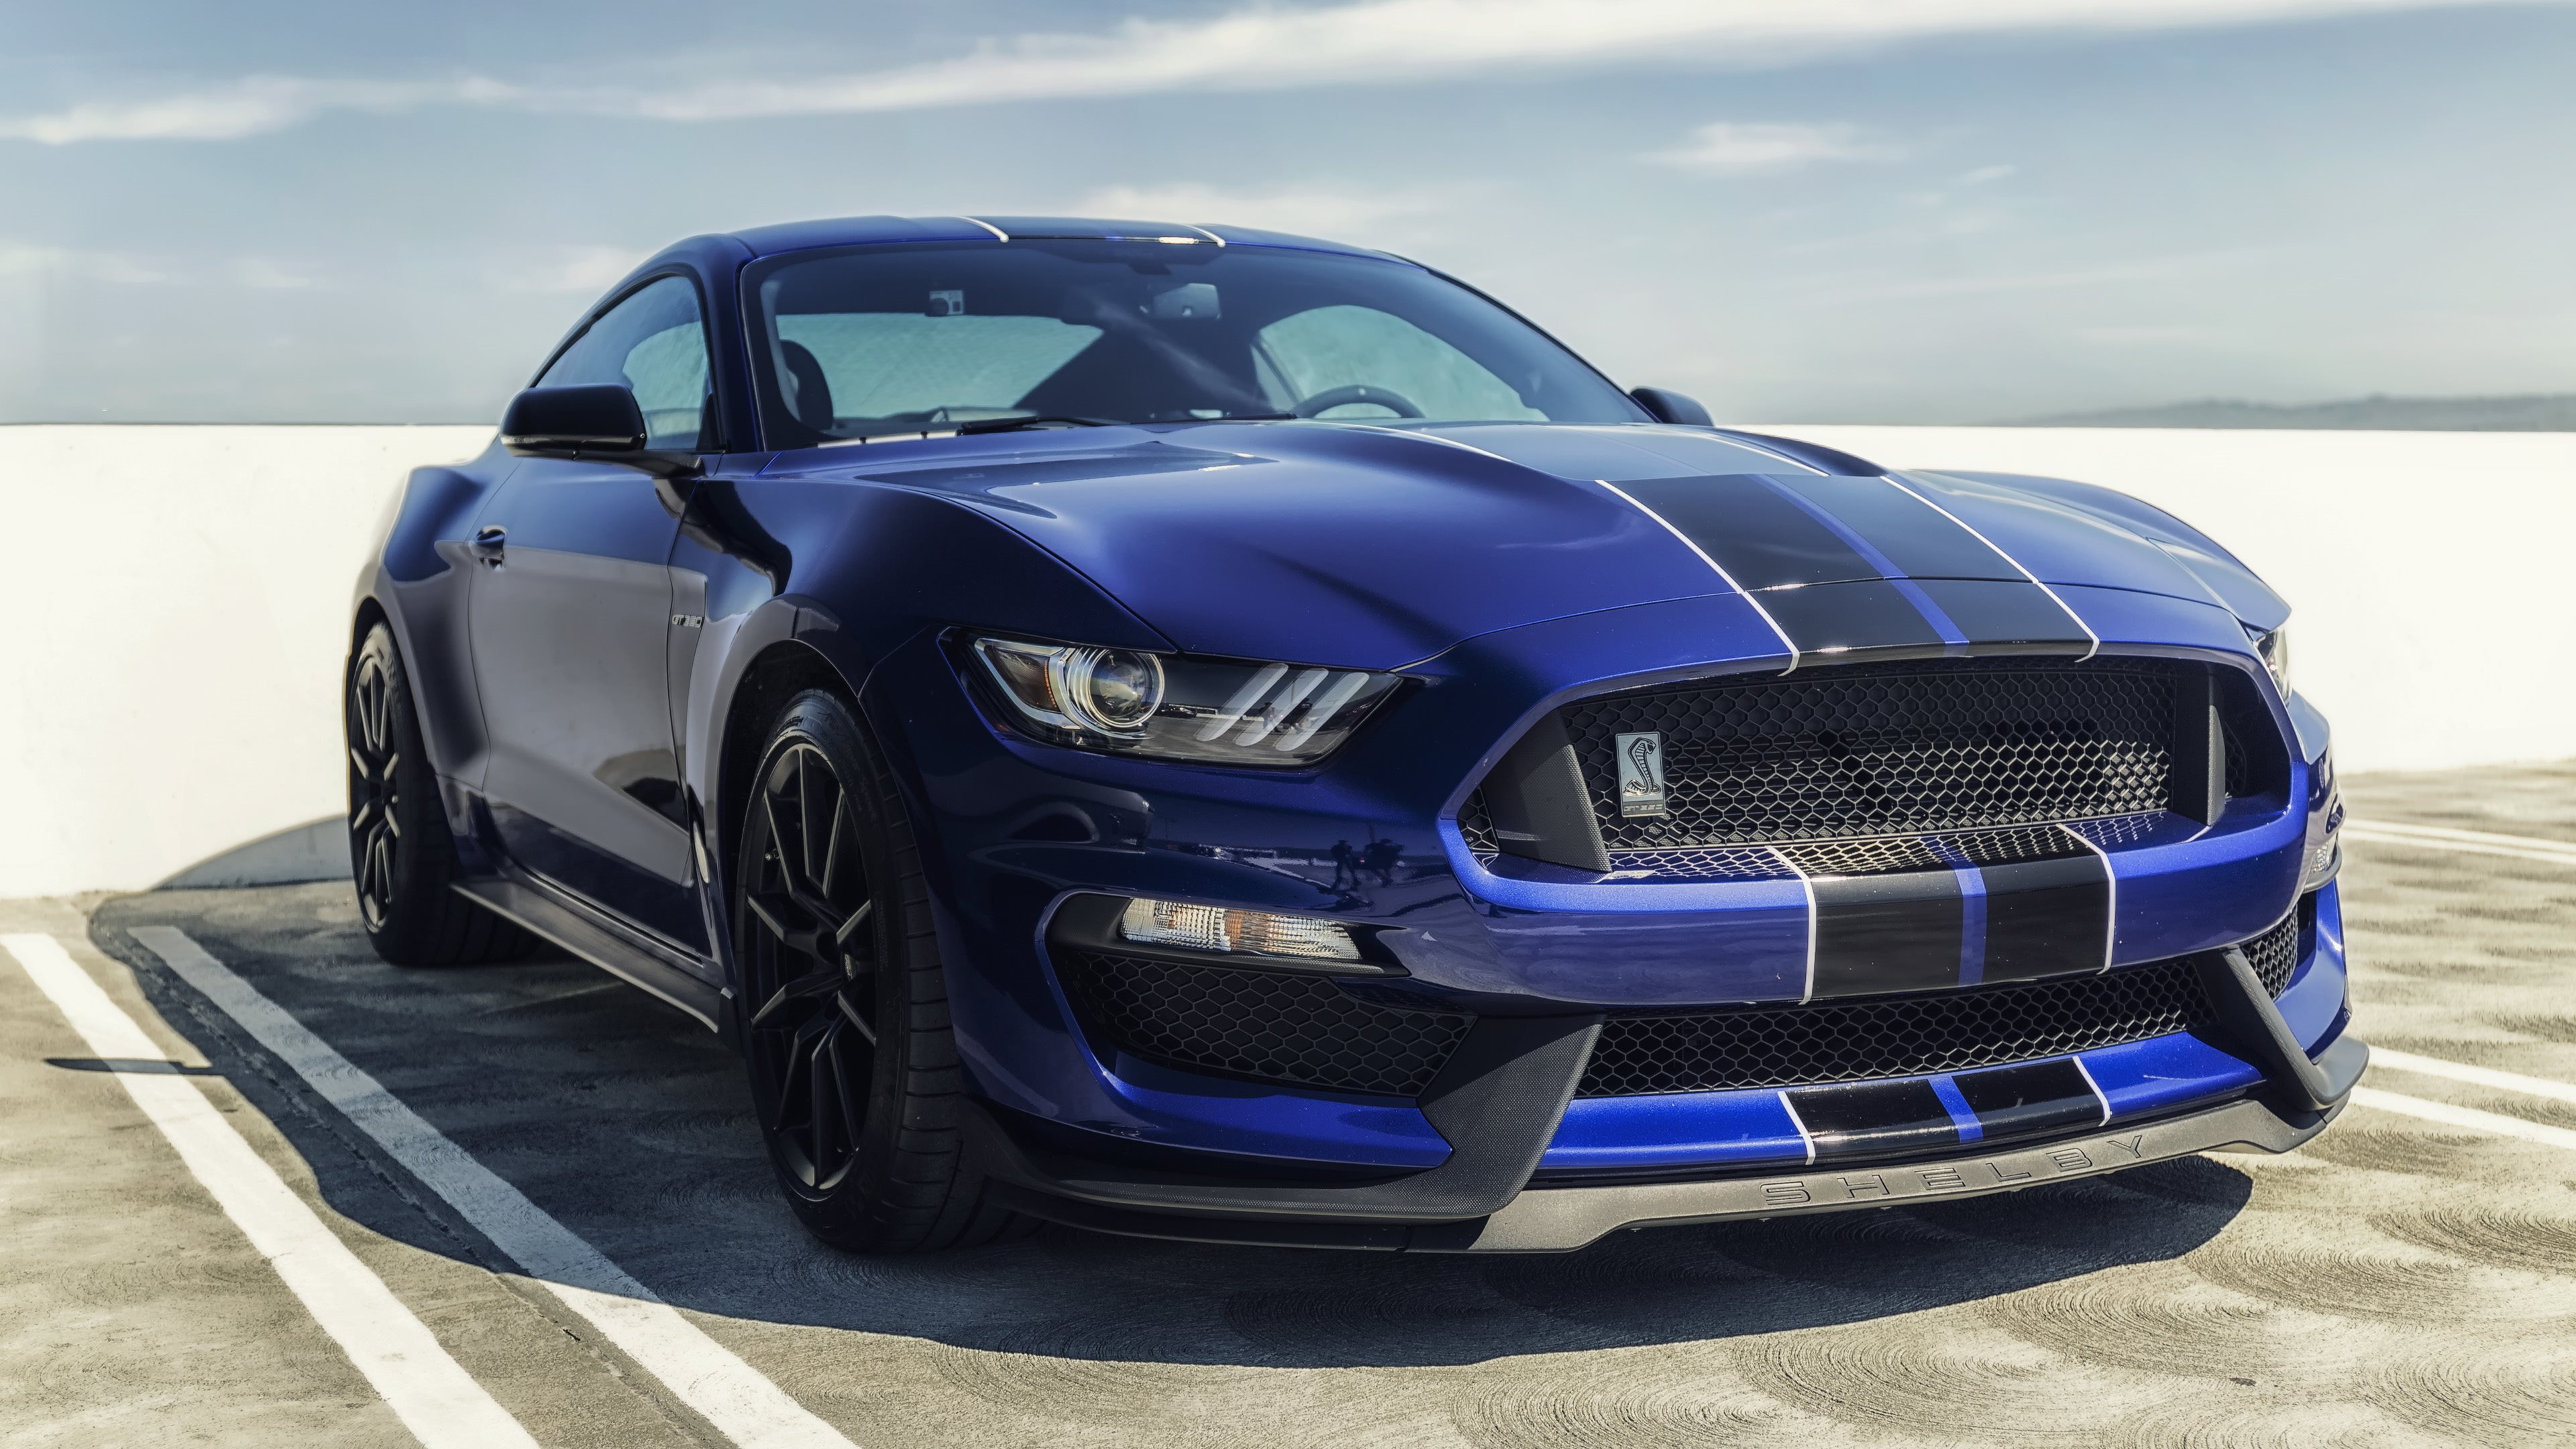 3840x2160 - Shelby Mustang GT 350 Wallpapers 26